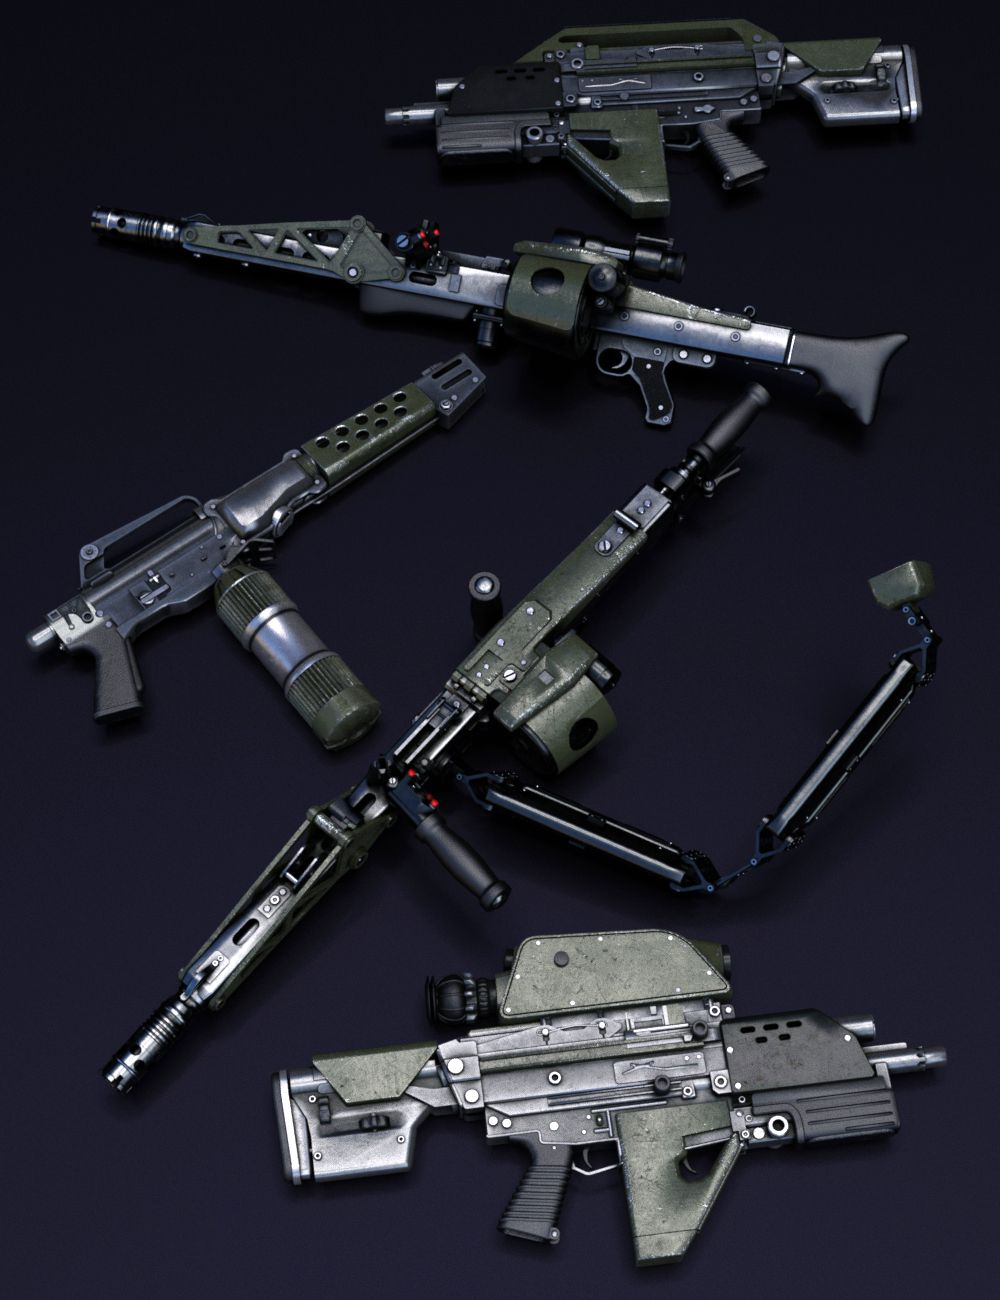 UCMC Weapons by: DzFire, 3D Models by Daz 3D